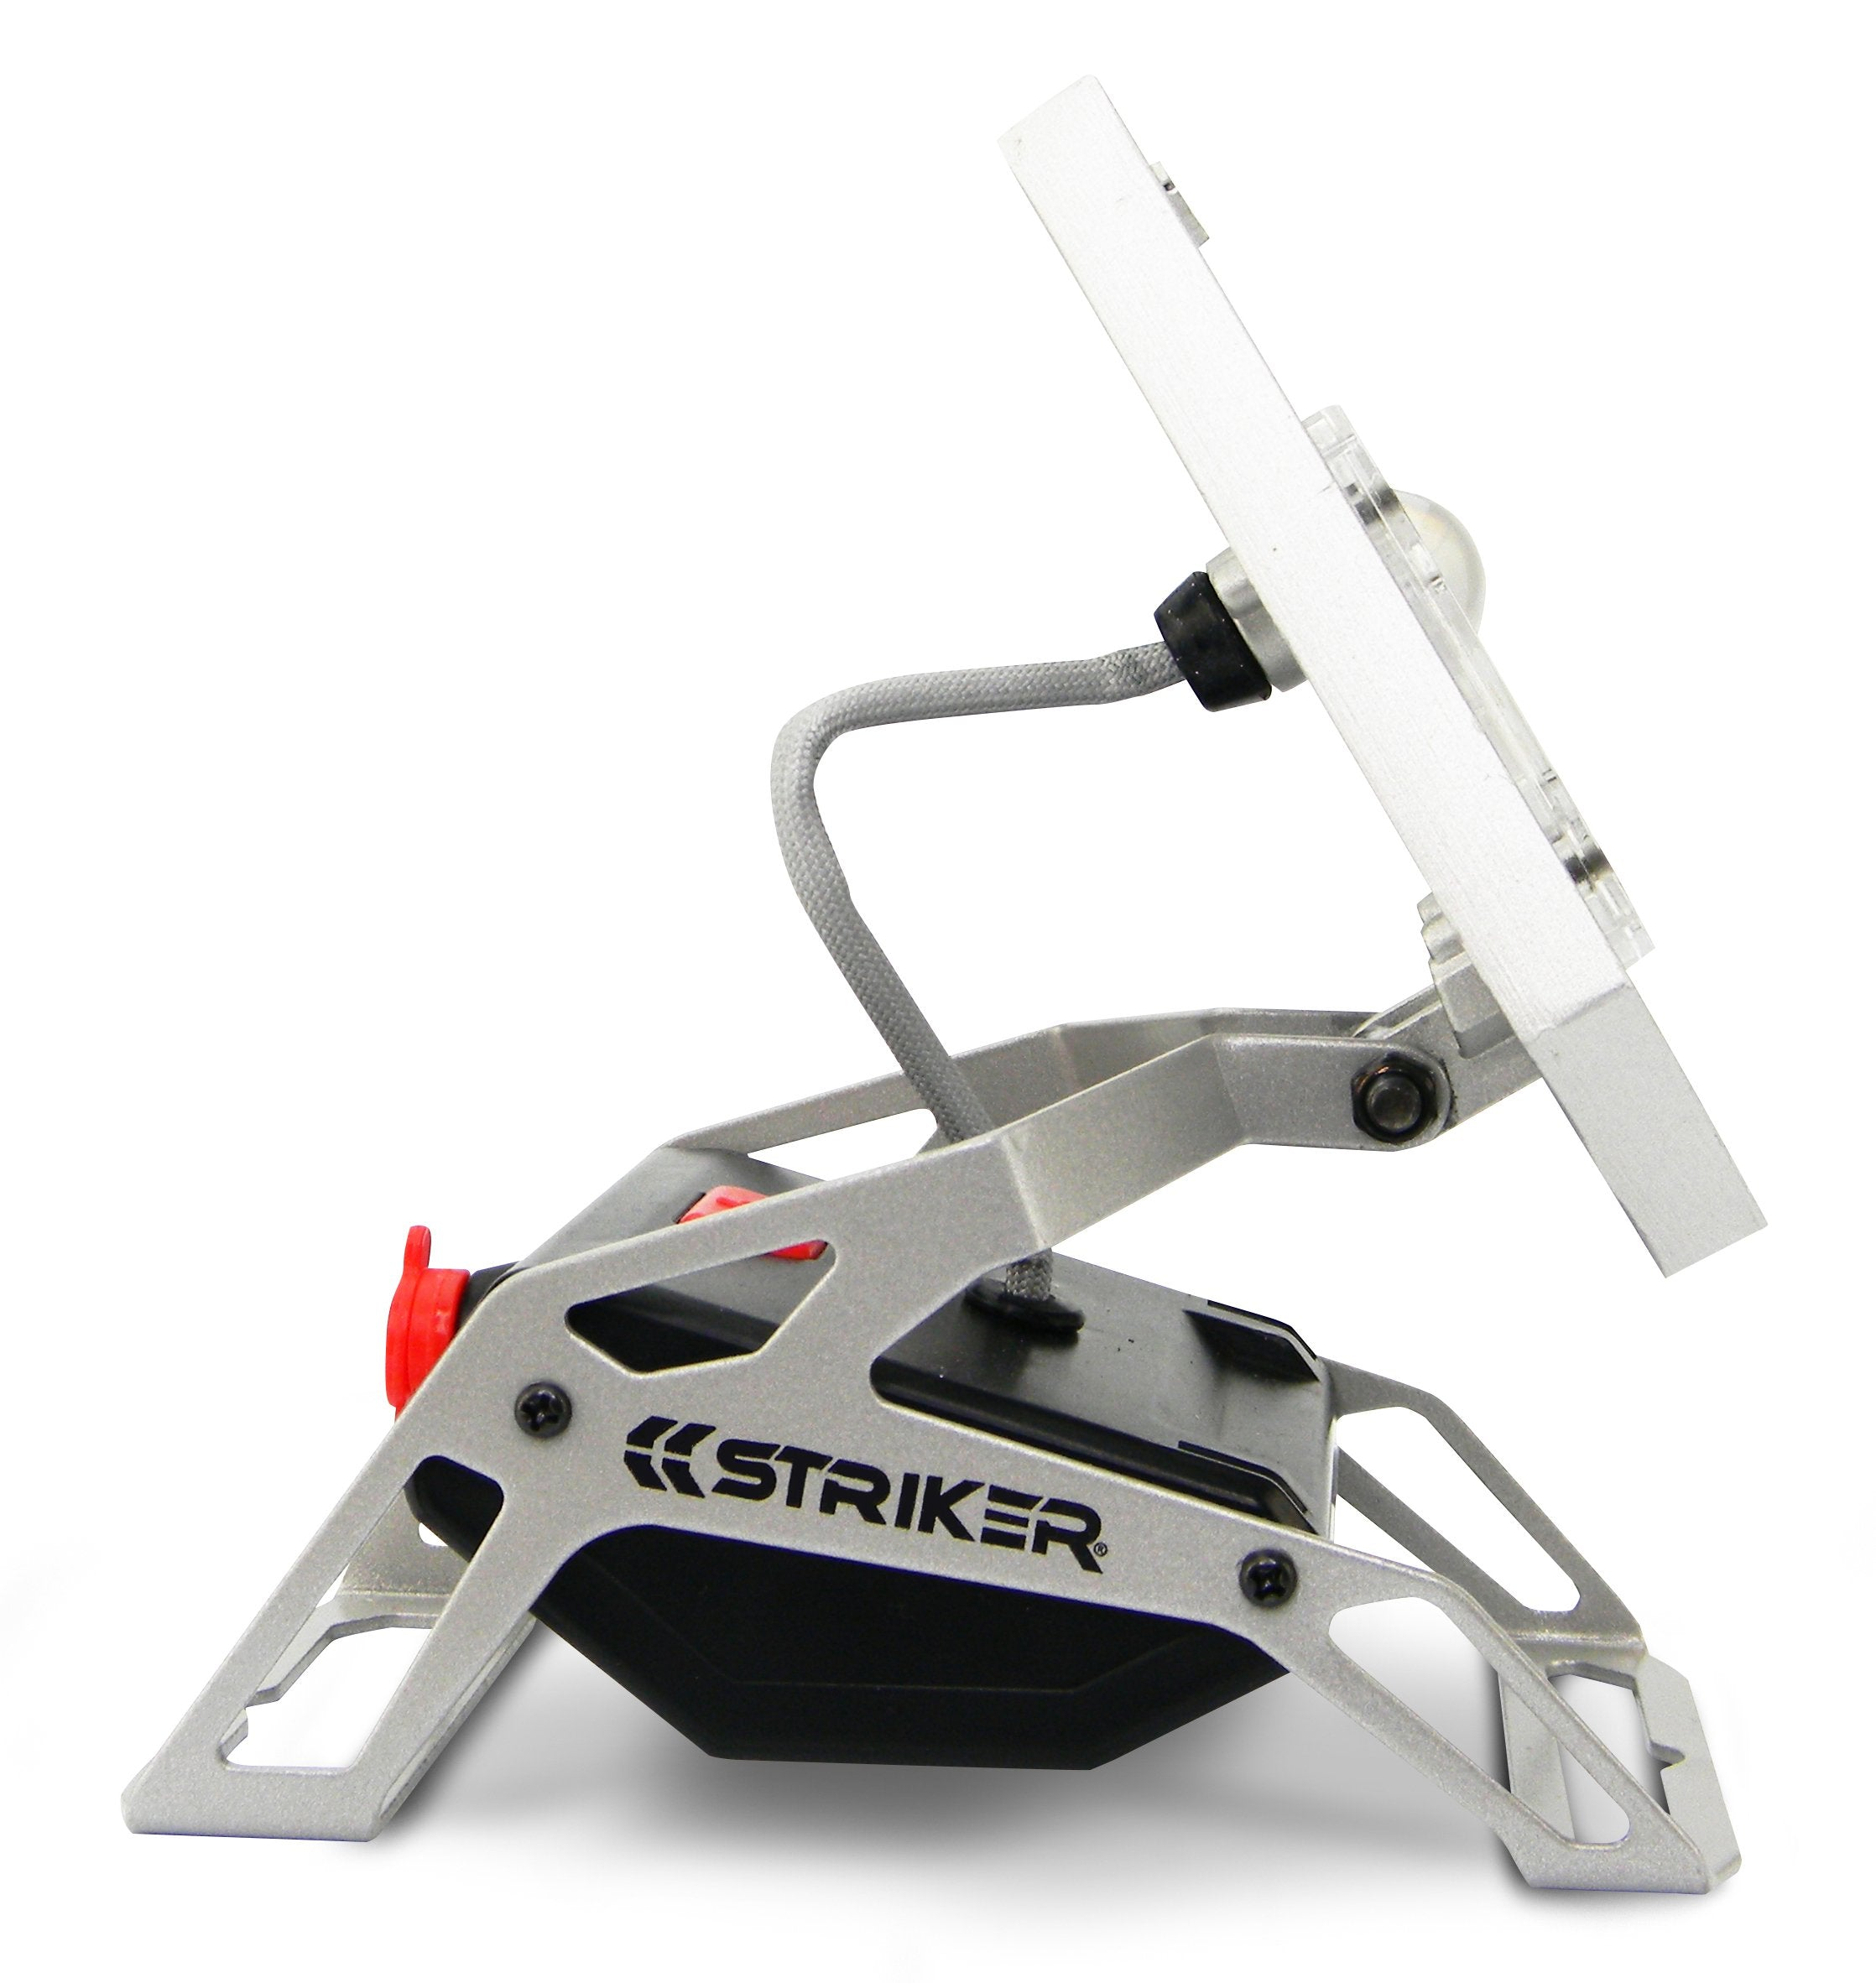 The Striker Mobile Task Light